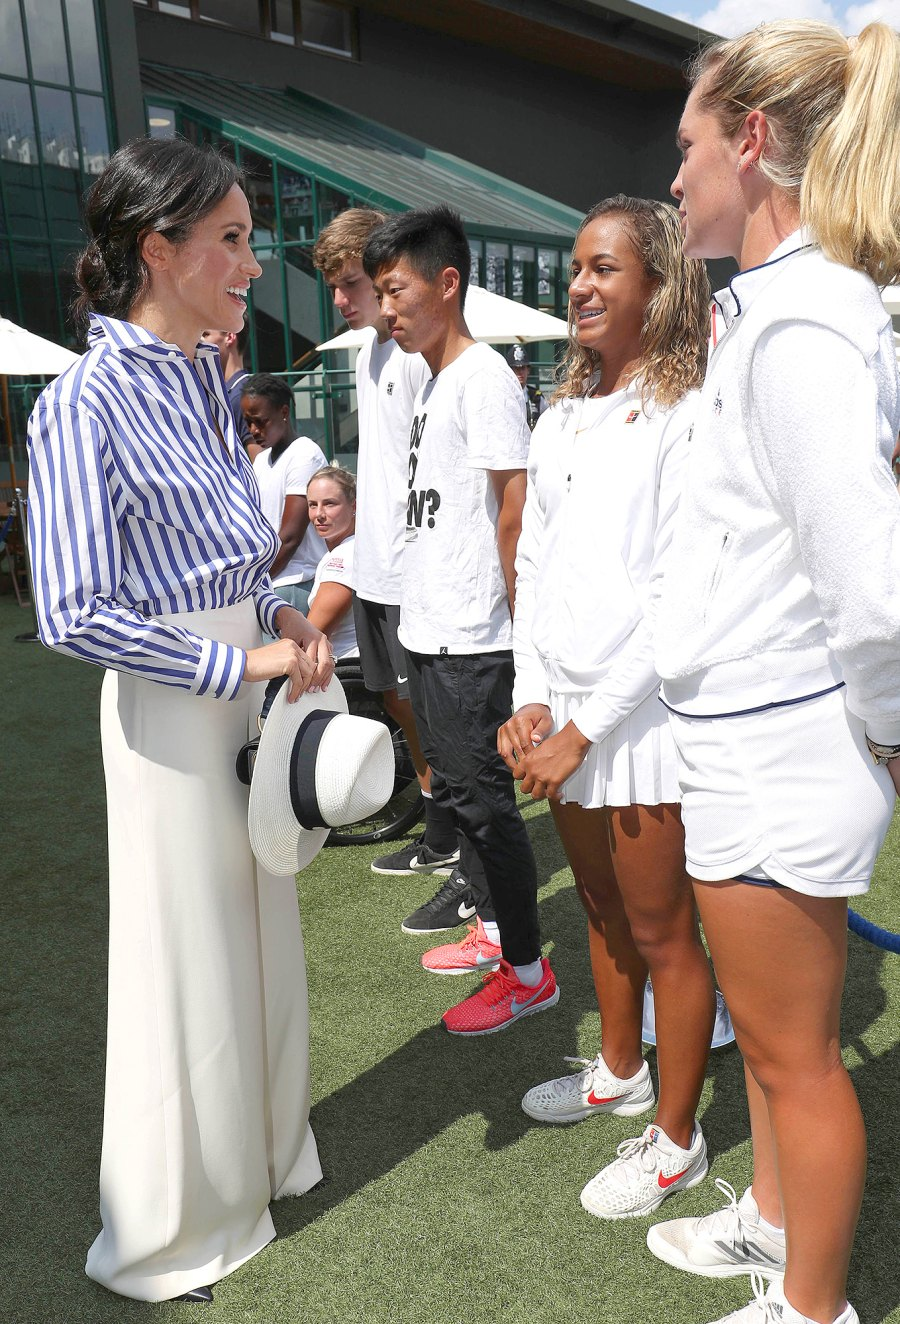 Duchess Meghan of Sussex, Wimbledon, Fashion